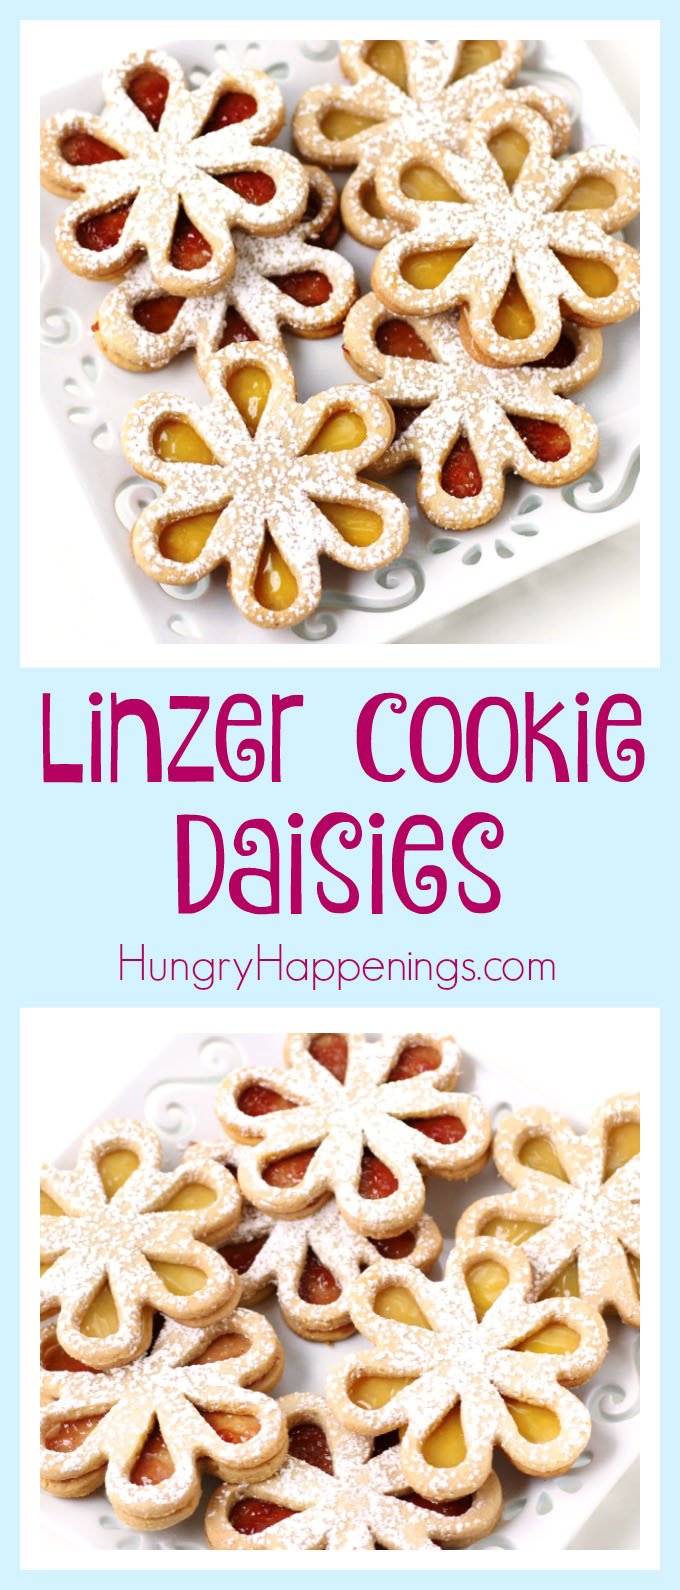 Turn crunchy almond cookies into pretty flowers. These Liner Cookie Daisies make perfect treats for Mother's Day, bridal showers, spring luncheons, or even an afternoon tea.